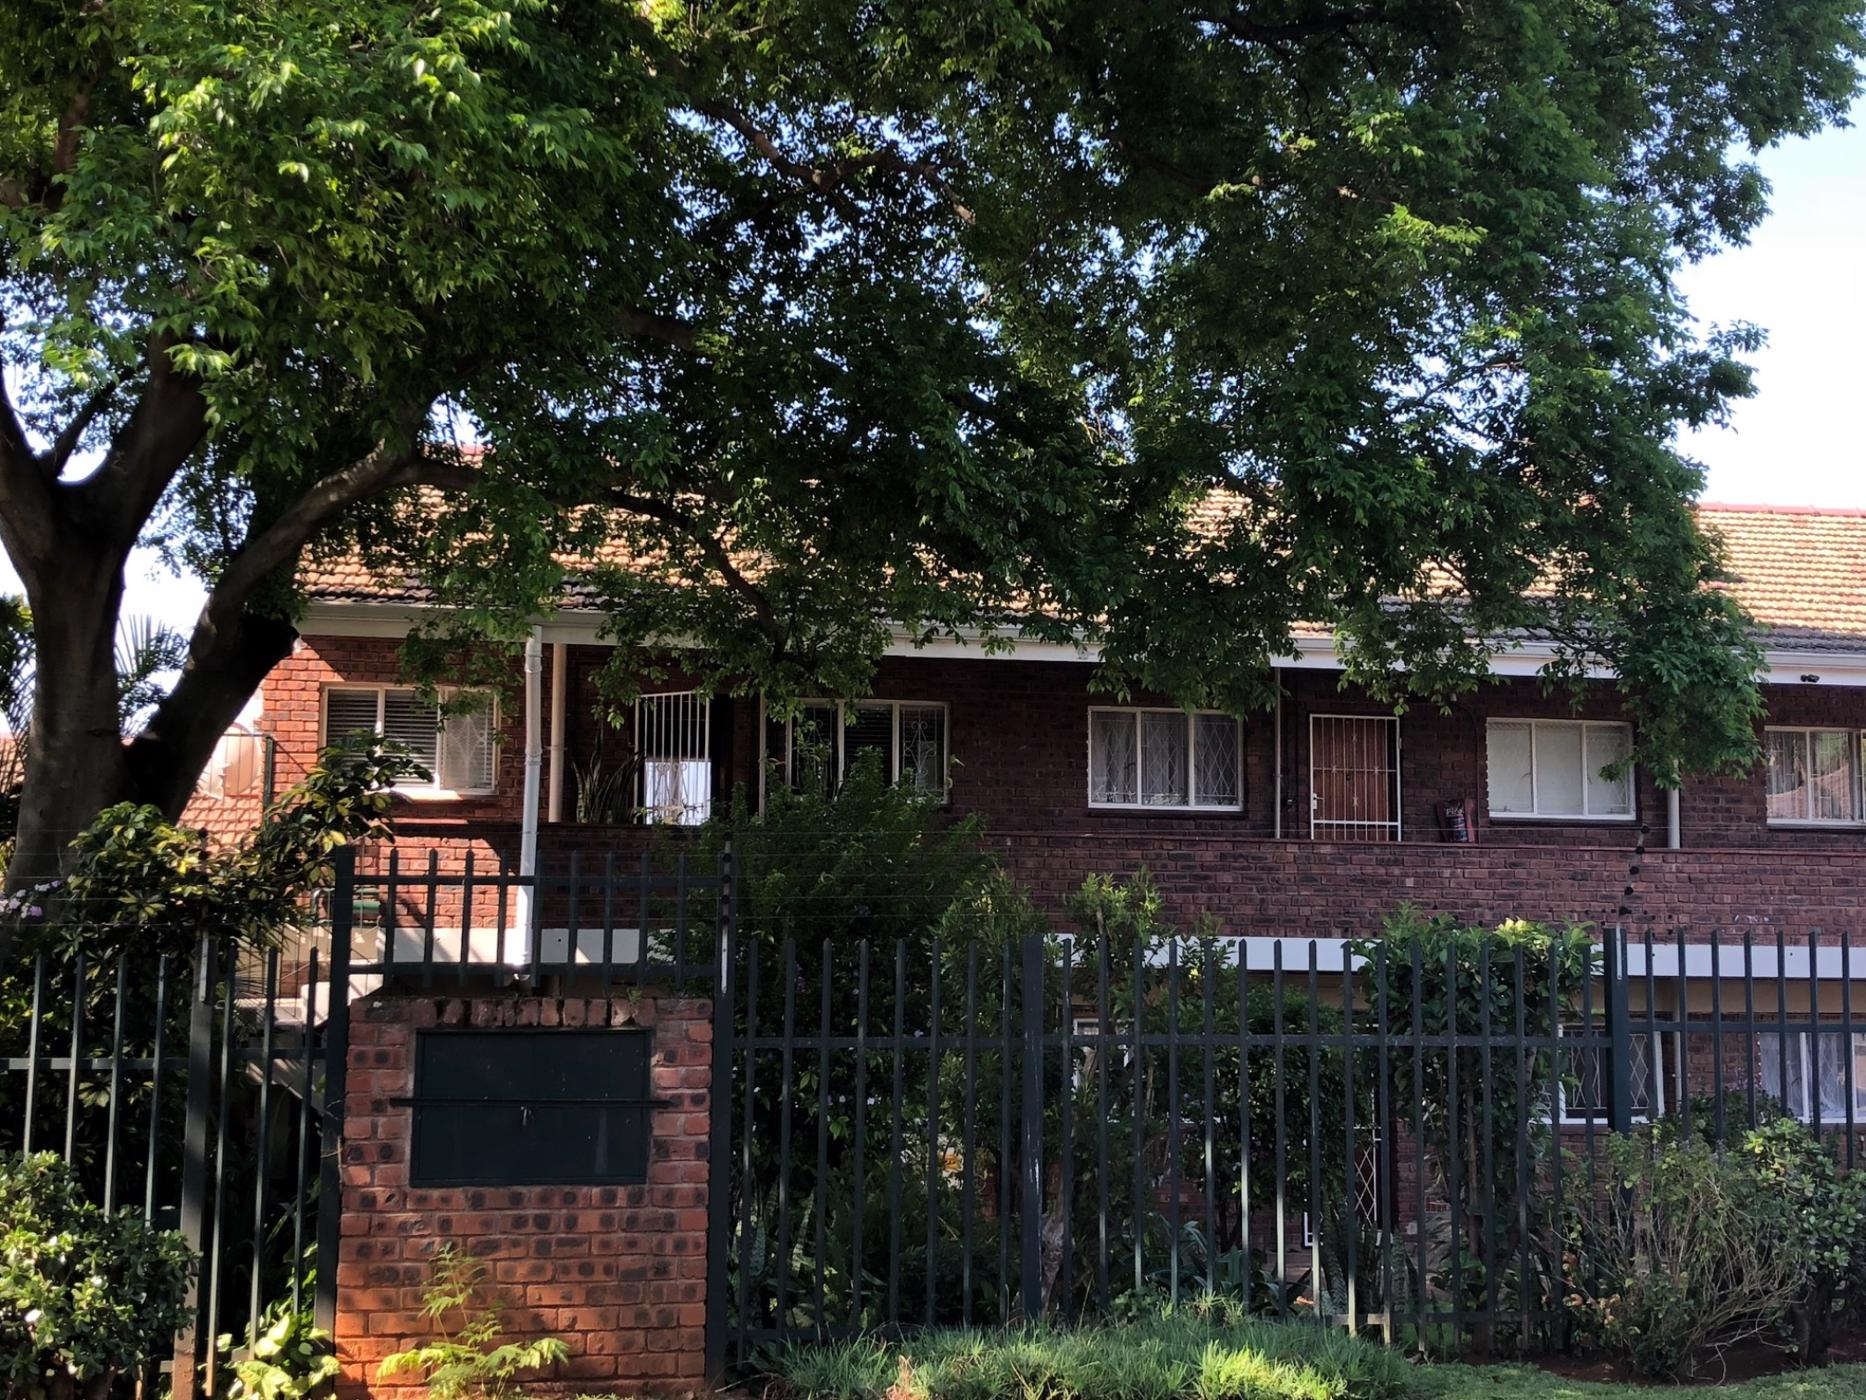 https://listing.pamgolding.co.za/images/properties/201908/298303/H/298303_H_15.jpg